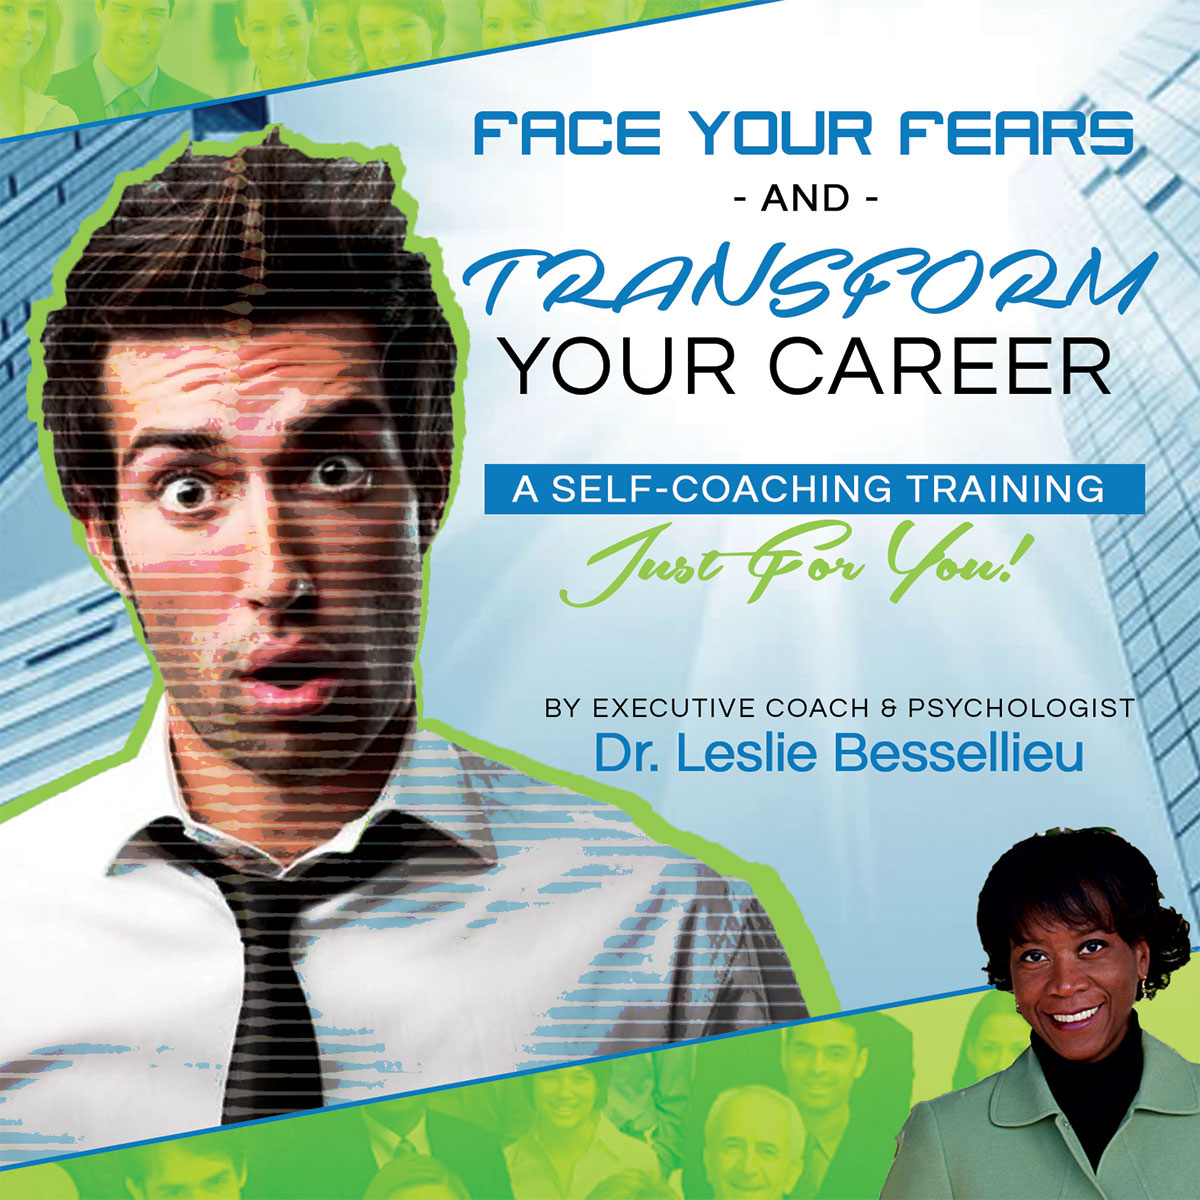 Face Your Fears and Transform Your Career